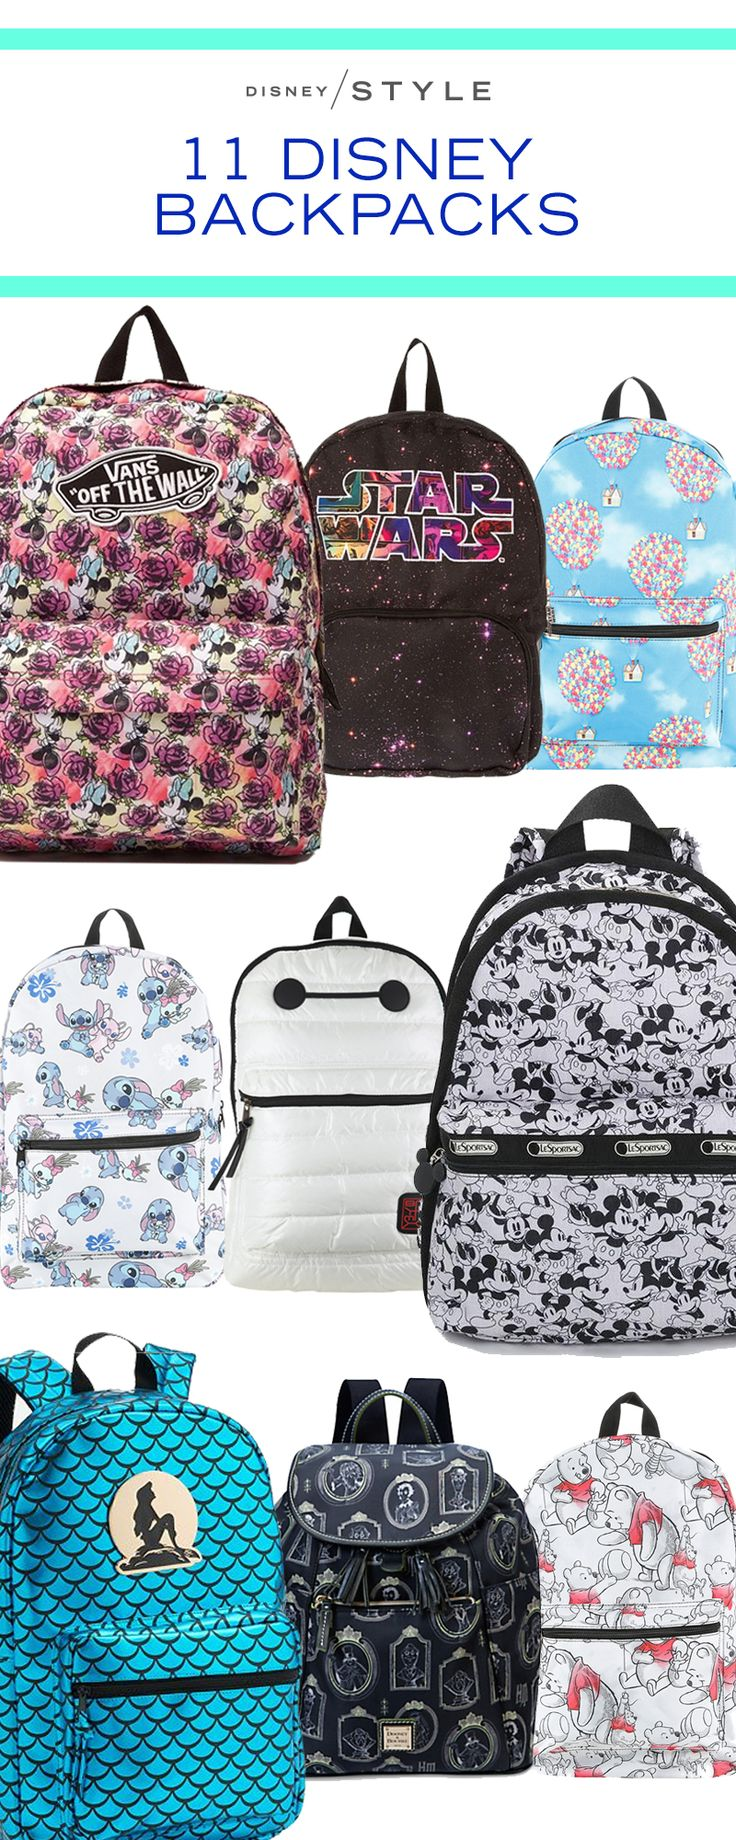 11 Disney backpacks that are perfect to wear to Disney Parks, school, work or as a fashion accessory. | [ http://blogs.disney.com/disney-style/fashion/2016/03/05/11-disney-backpacks-to-up-your-accessories-game/#101-dalmatians ]